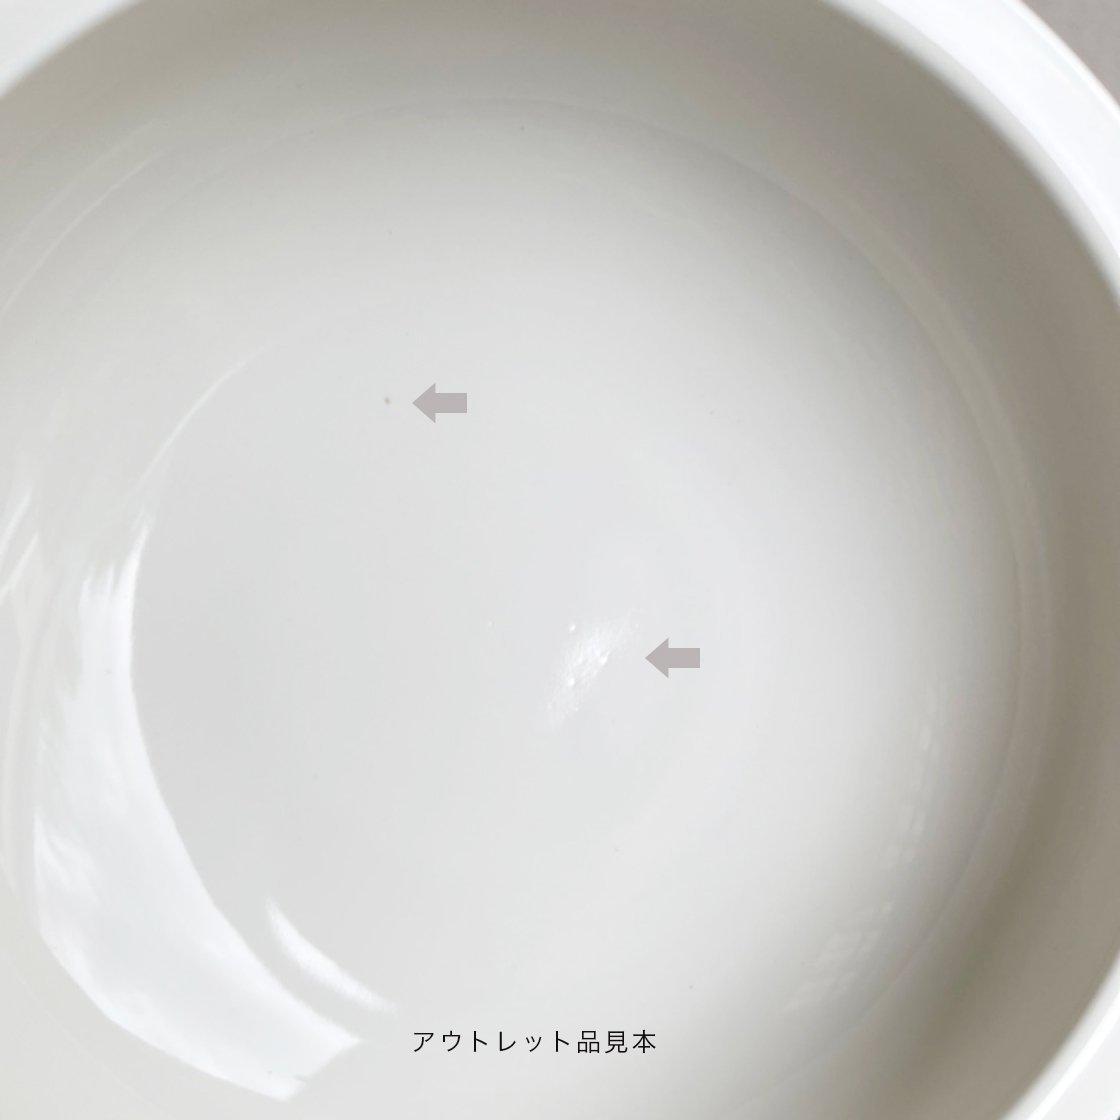 <img class='new_mark_img1' src='https://img.shop-pro.jp/img/new/icons30.gif' style='border:none;display:inline;margin:0px;padding:0px;width:auto;' />Classy Bowl【water bowl】THz(テラヘルツ) / 水用